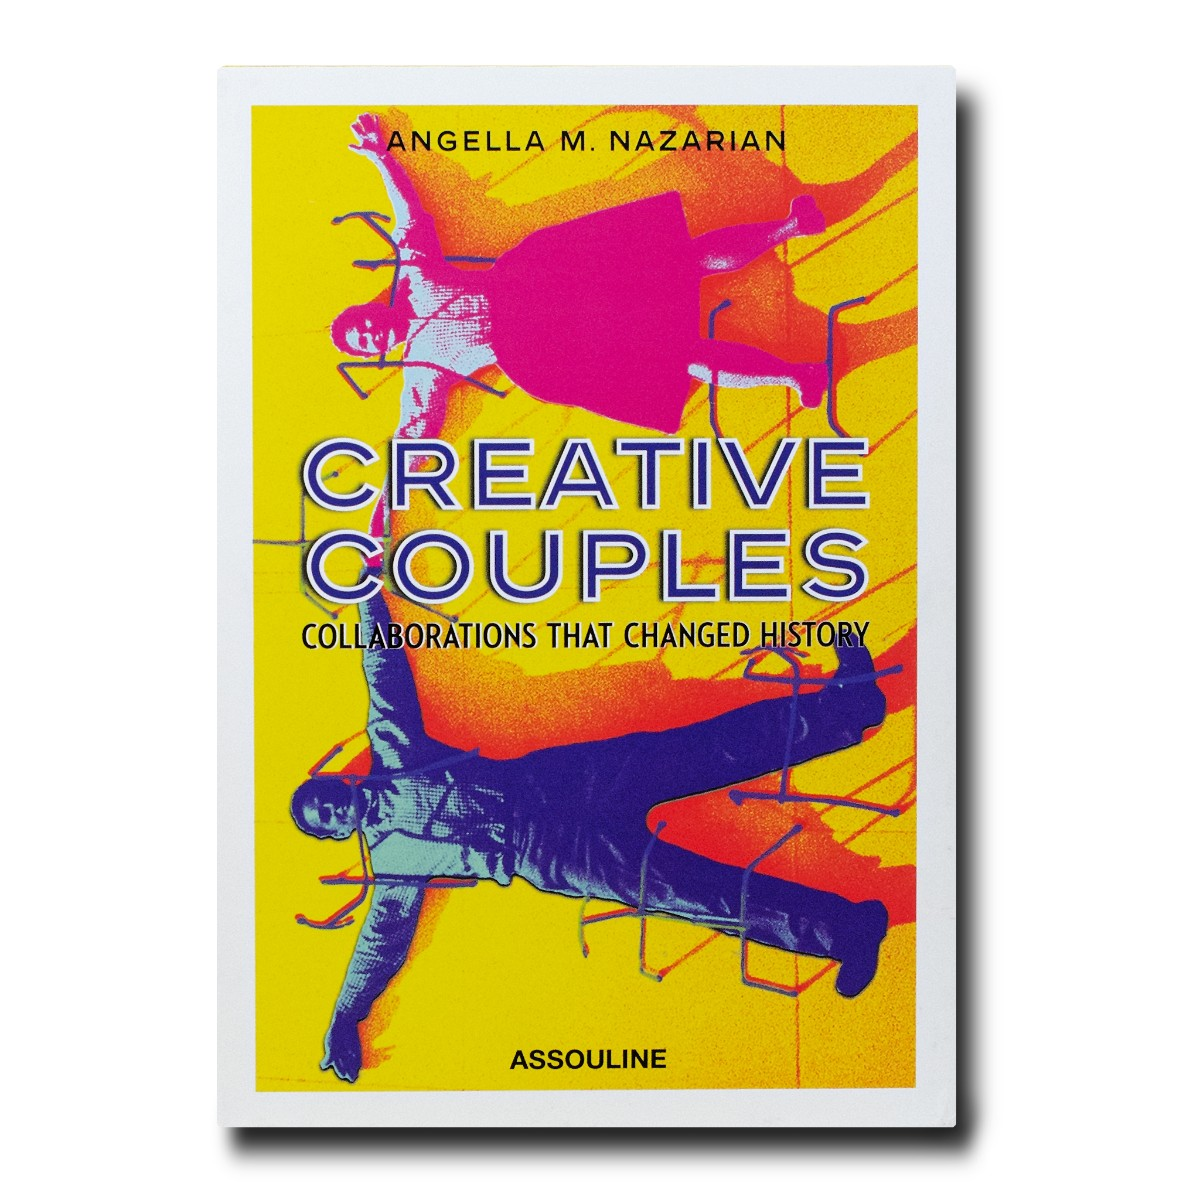 Assouline | Creative Couples: Collaborations That Changed History